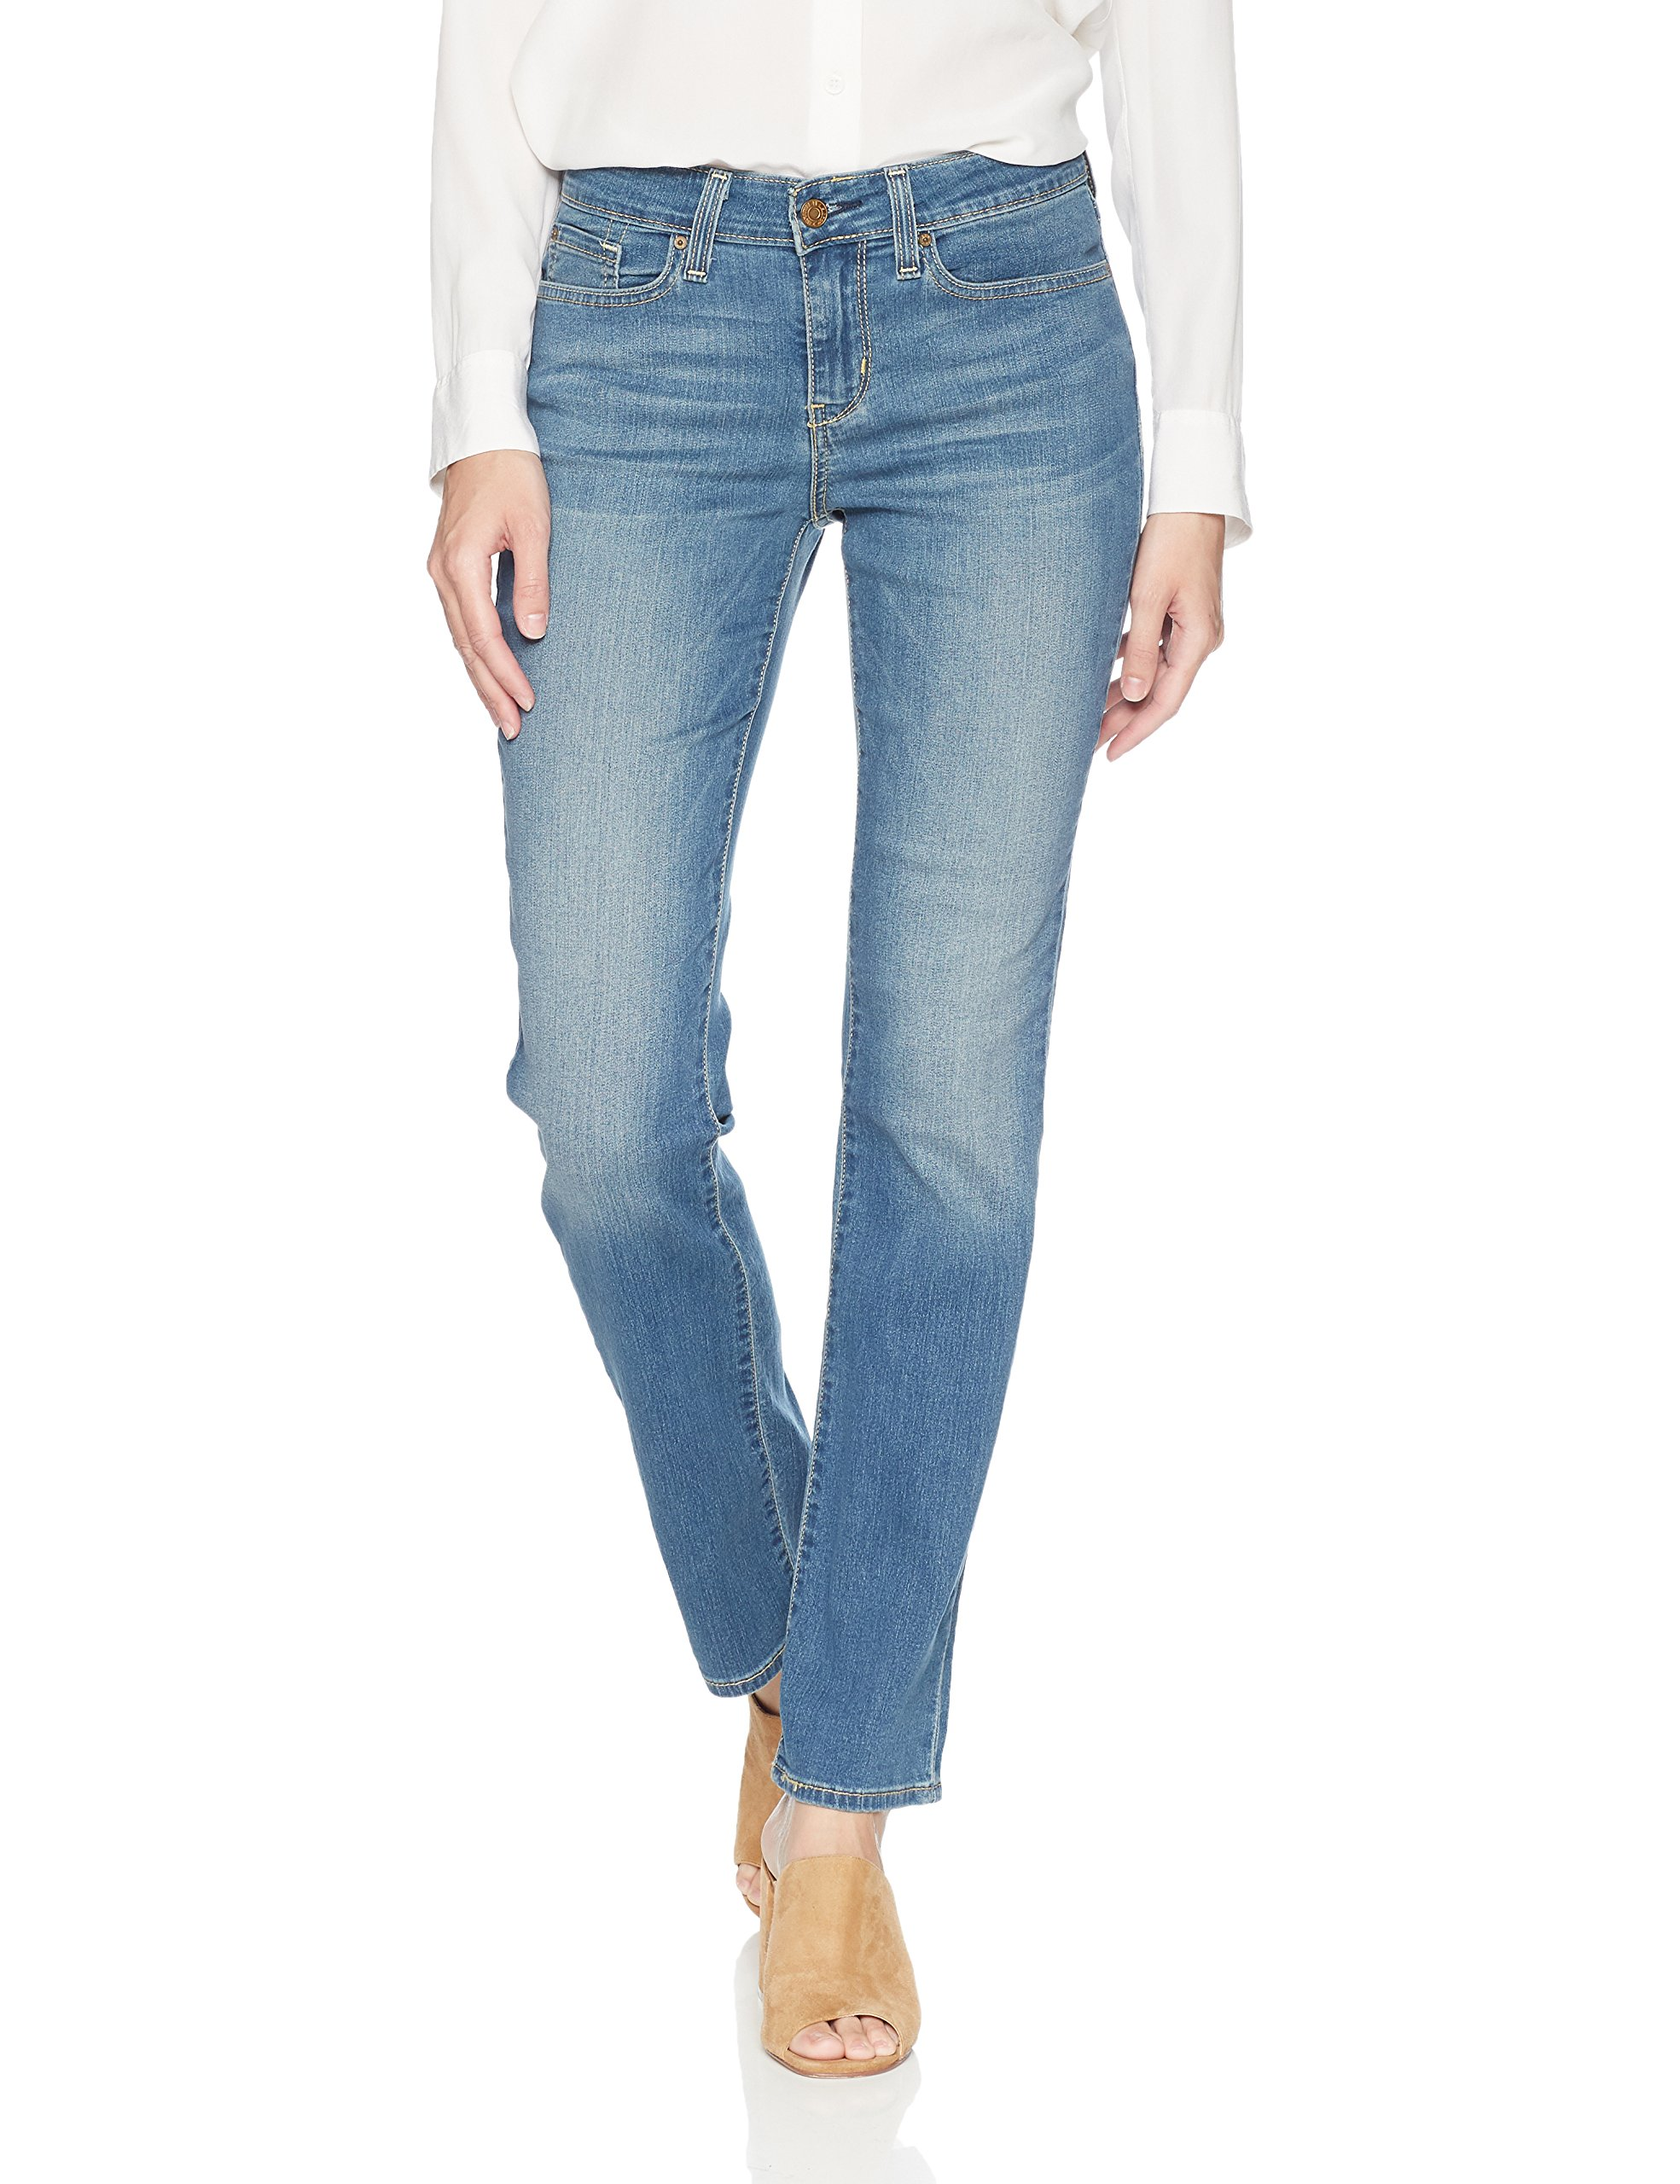 Signature by Levi Strauss & Co. Gold Label Women's Modern Straight Jeans, Rhapsody, 10 Medium by Signature by Levi Strauss & Co. Gold Label